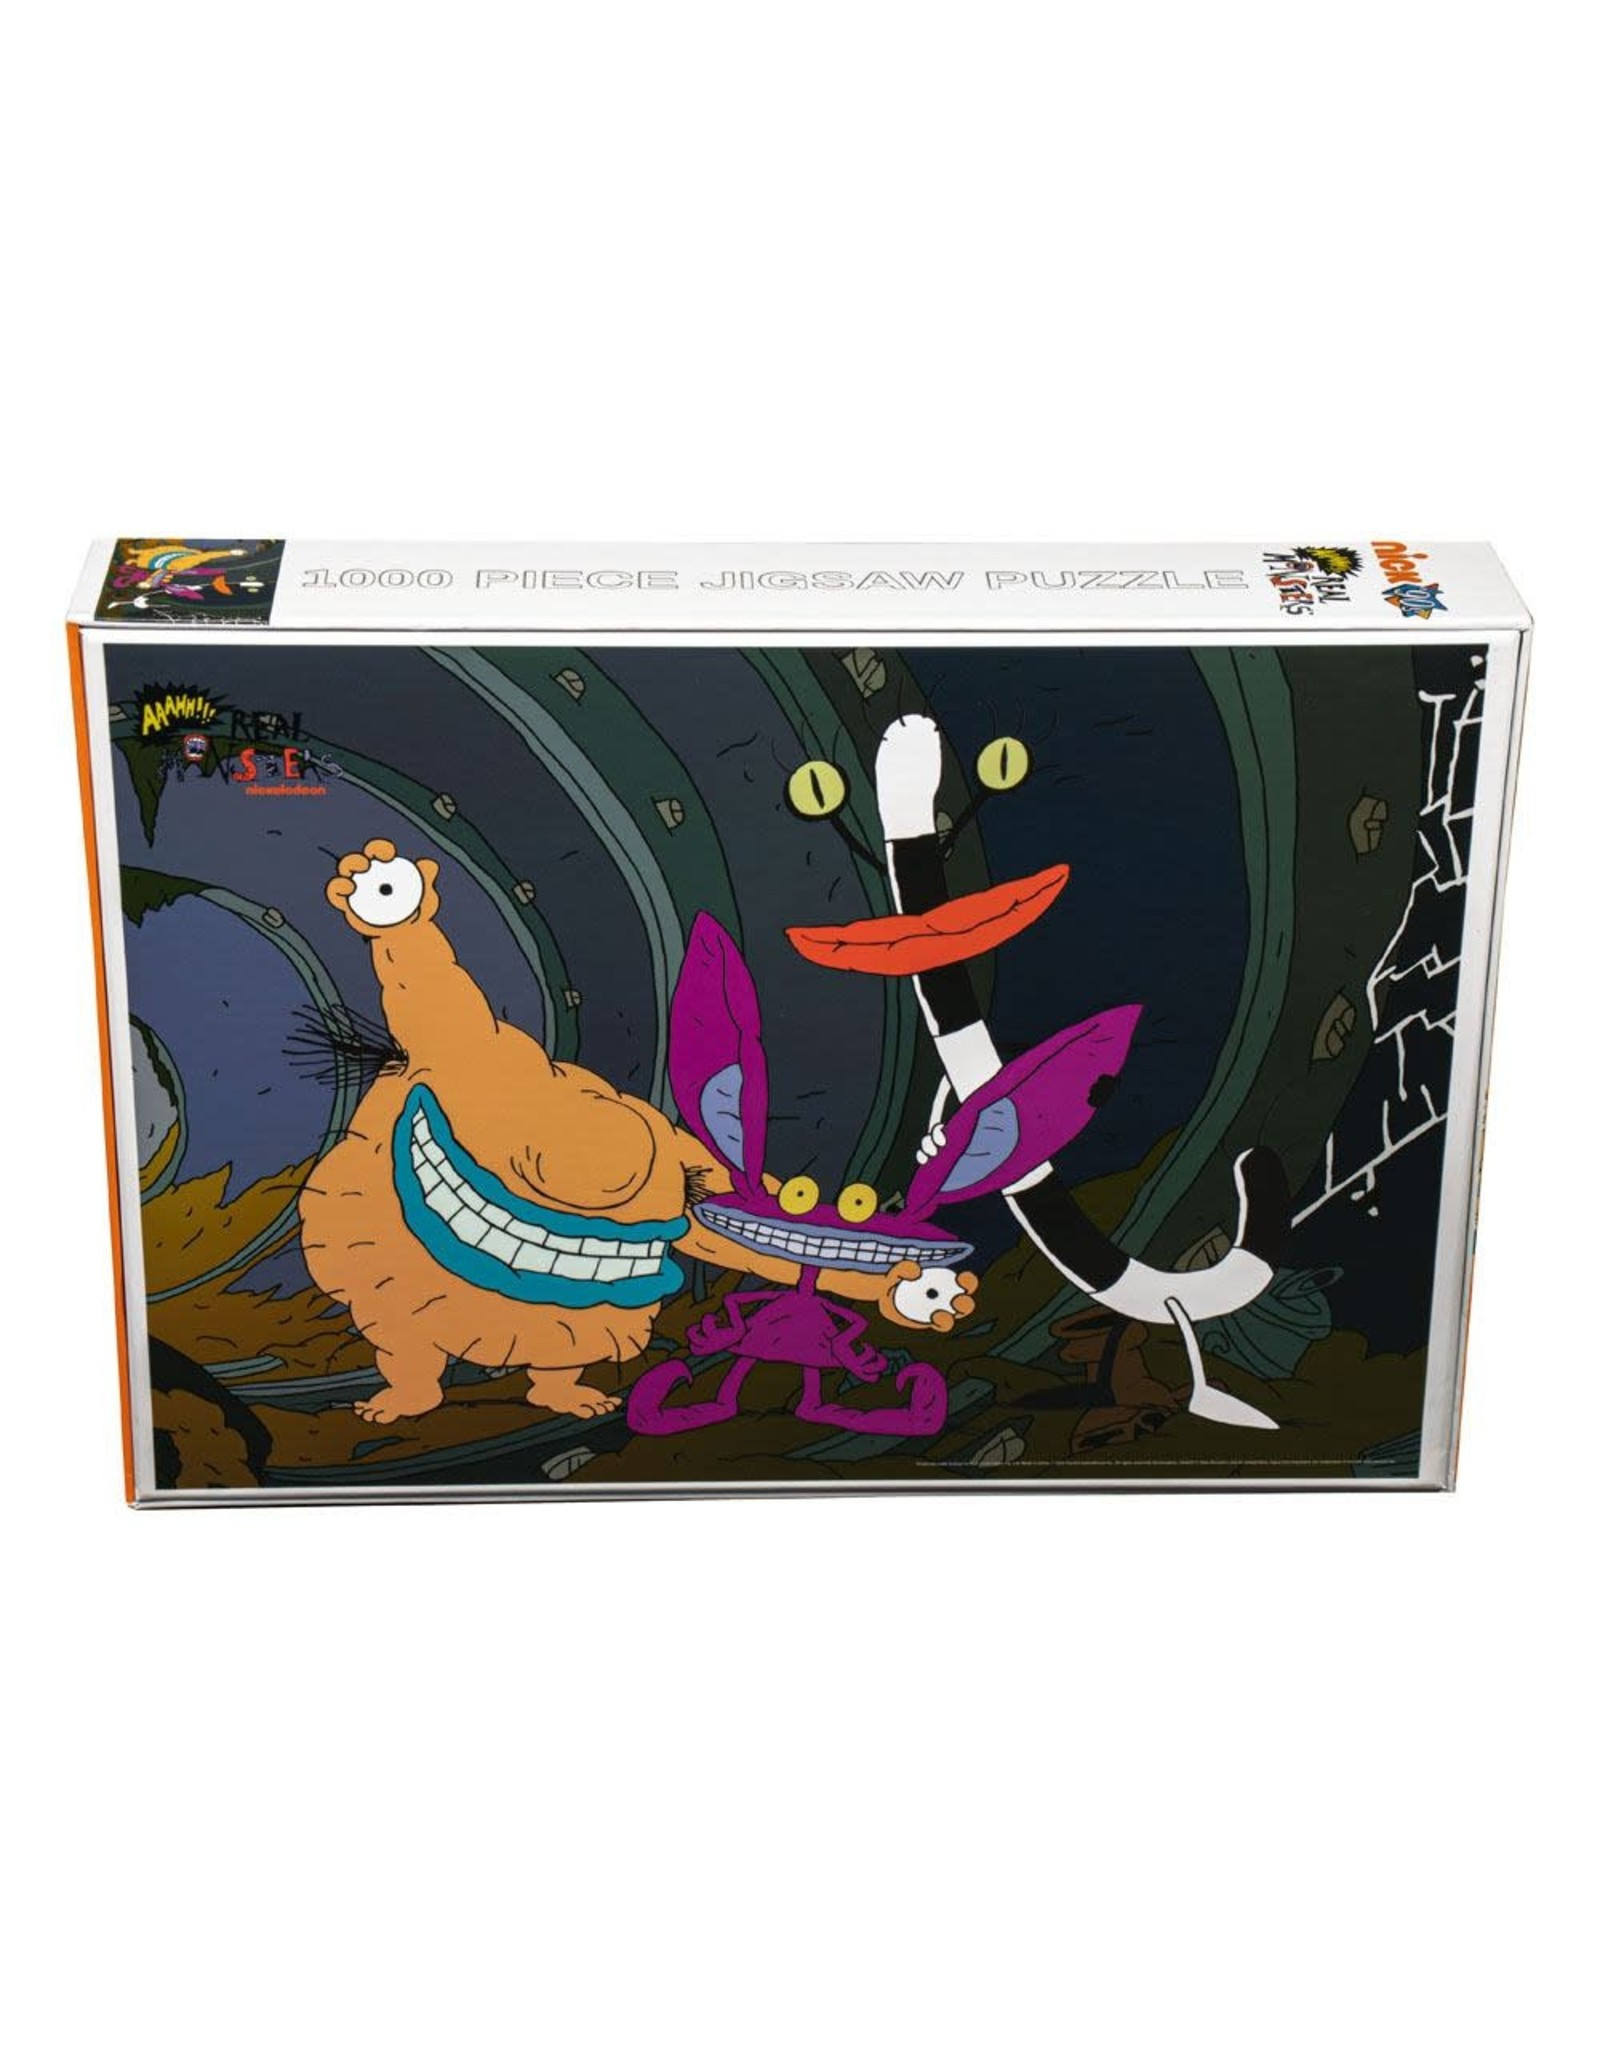 Ikon Collectables AAAHH!!! REAL MONSTERS Puzzle 1000P - Sewer Tunnel